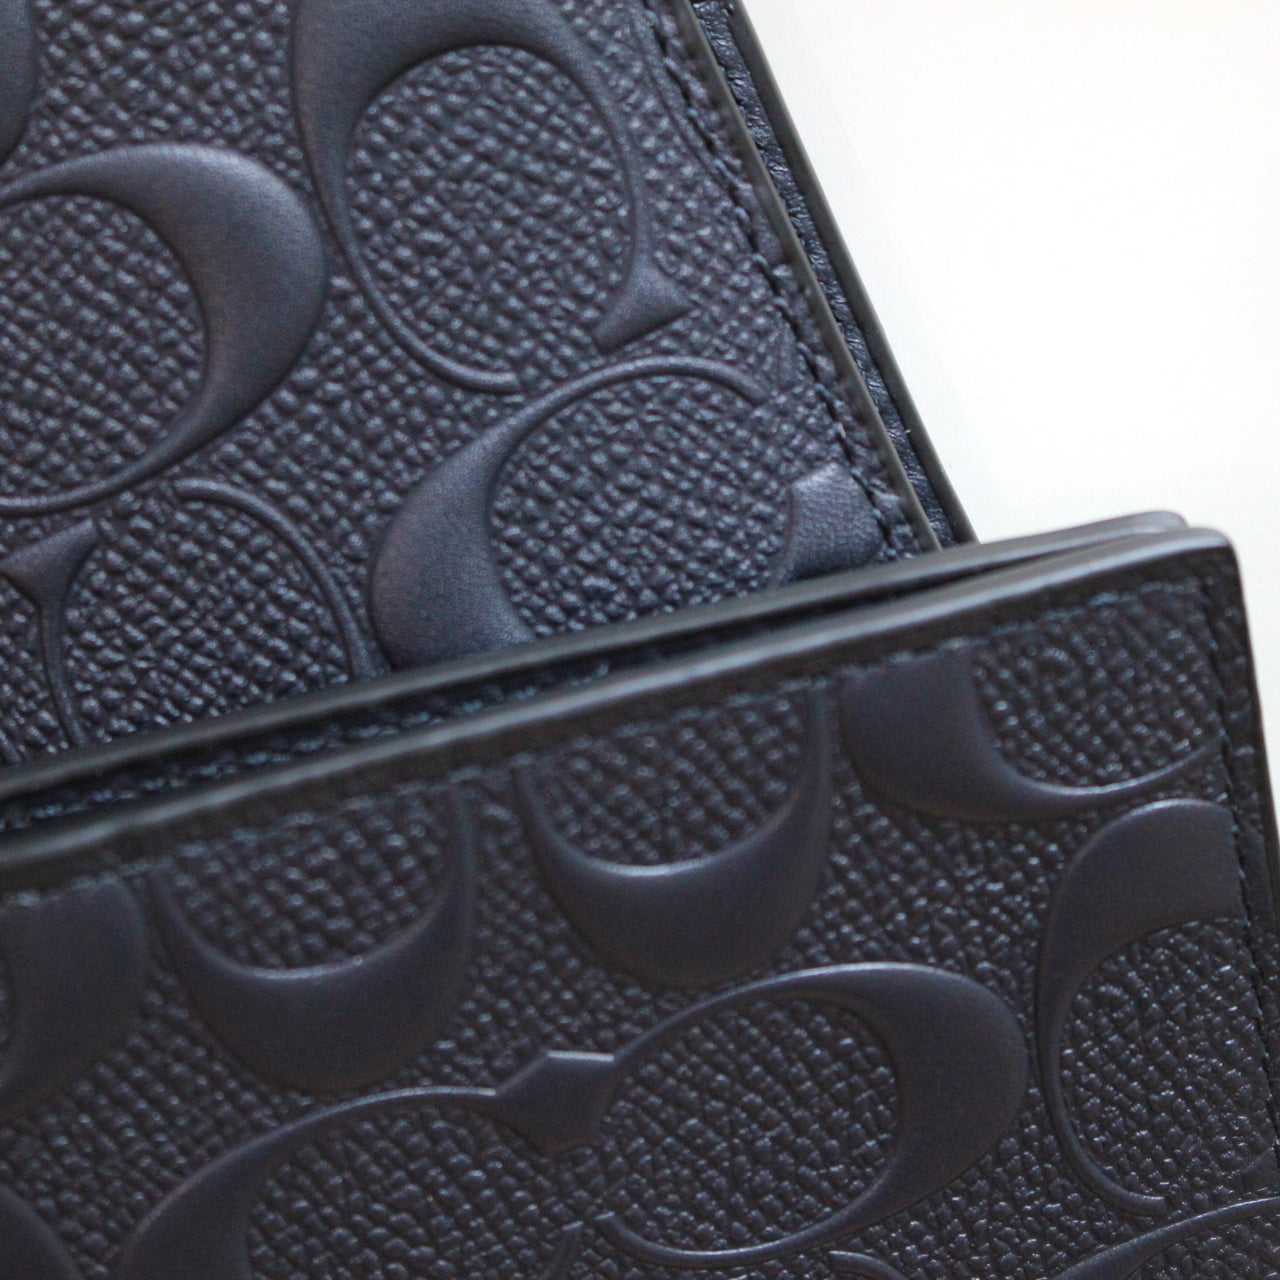 COACH COMPACT ID WALLET IN SIGNATURE CROSSGRAIN LEATHER - LovelyMadness Clothing Malaysia